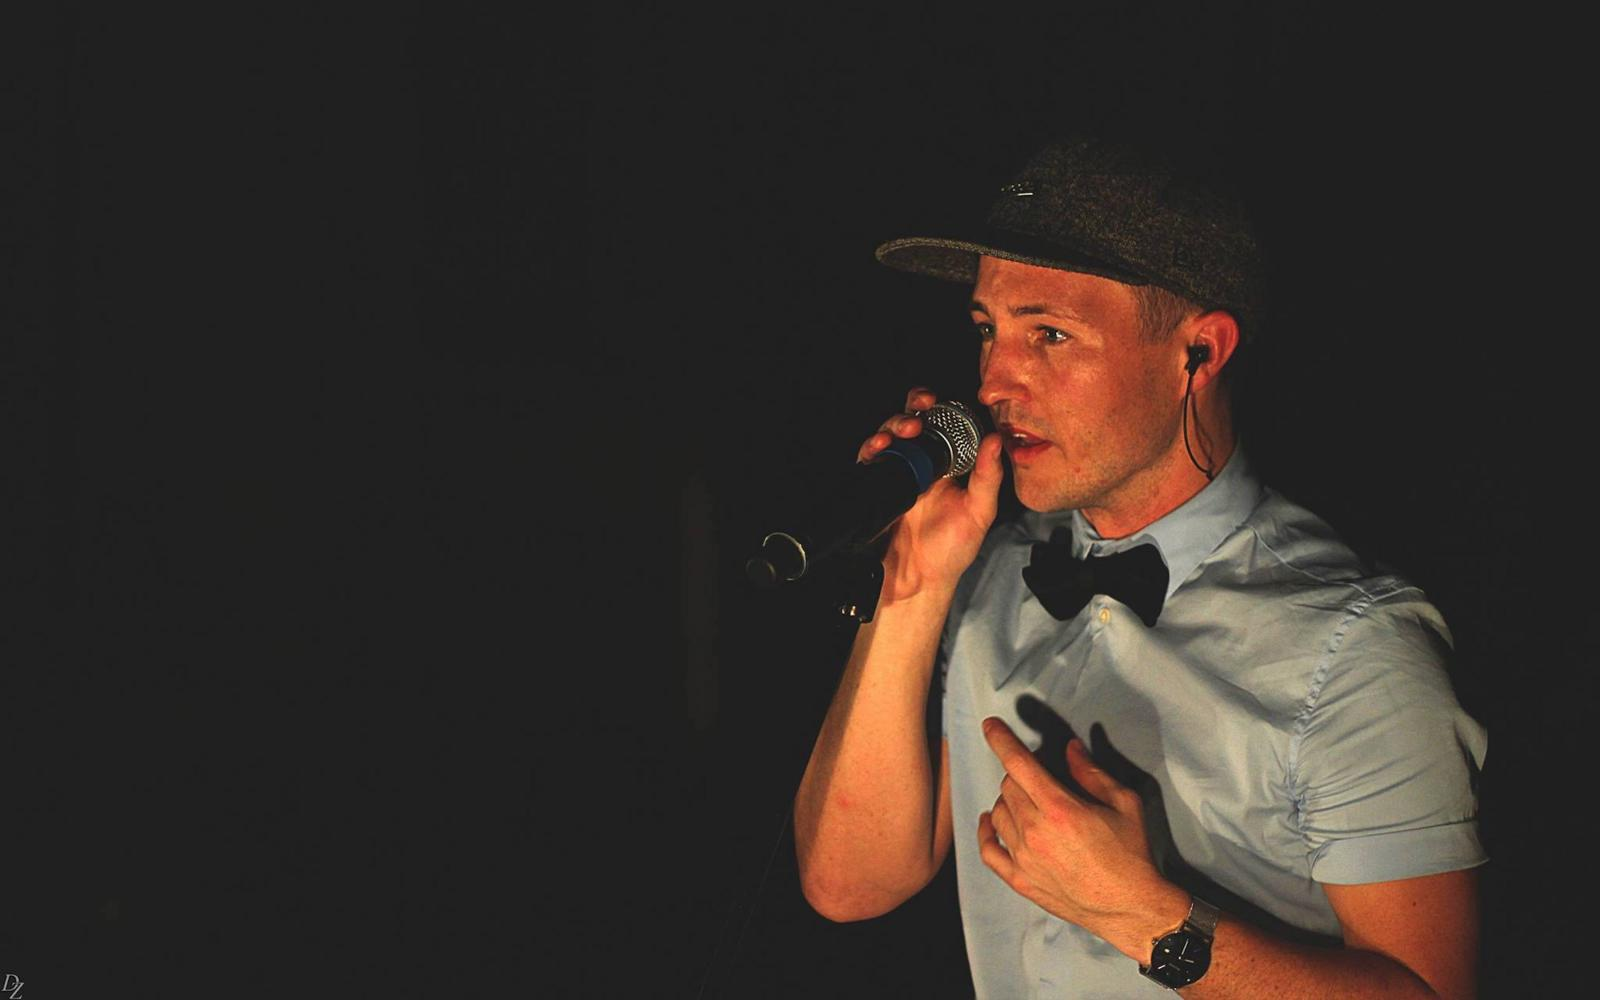 Man in baseball cap beatboxes into microphone. Dark background